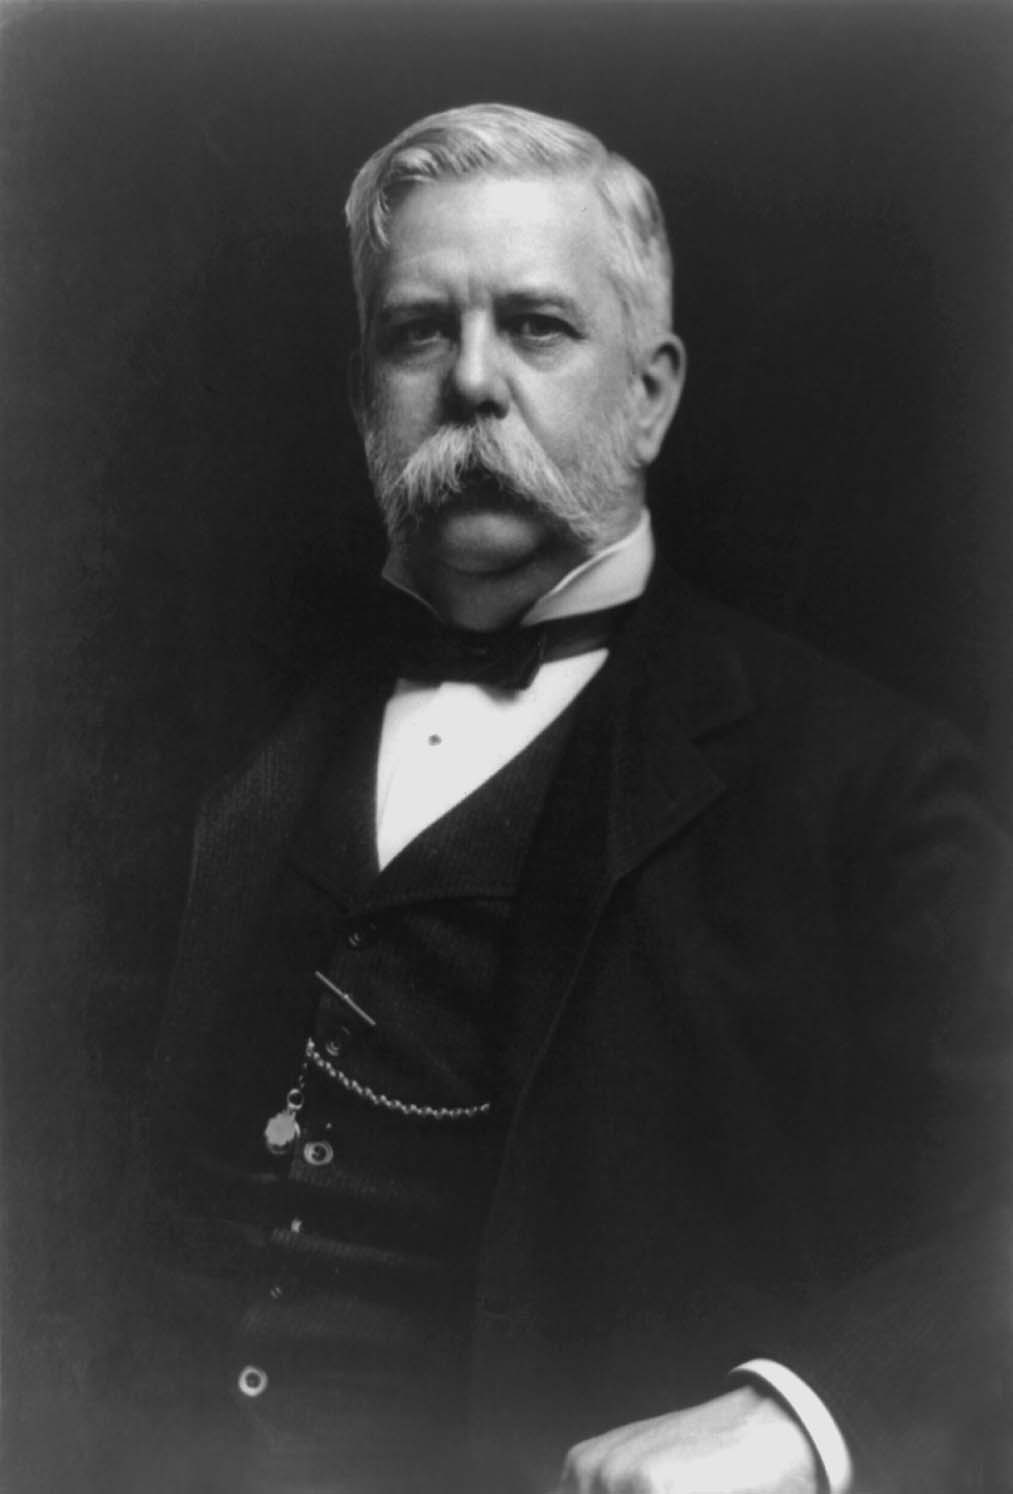 File:George Westinghouse.jpg - Wikipedia